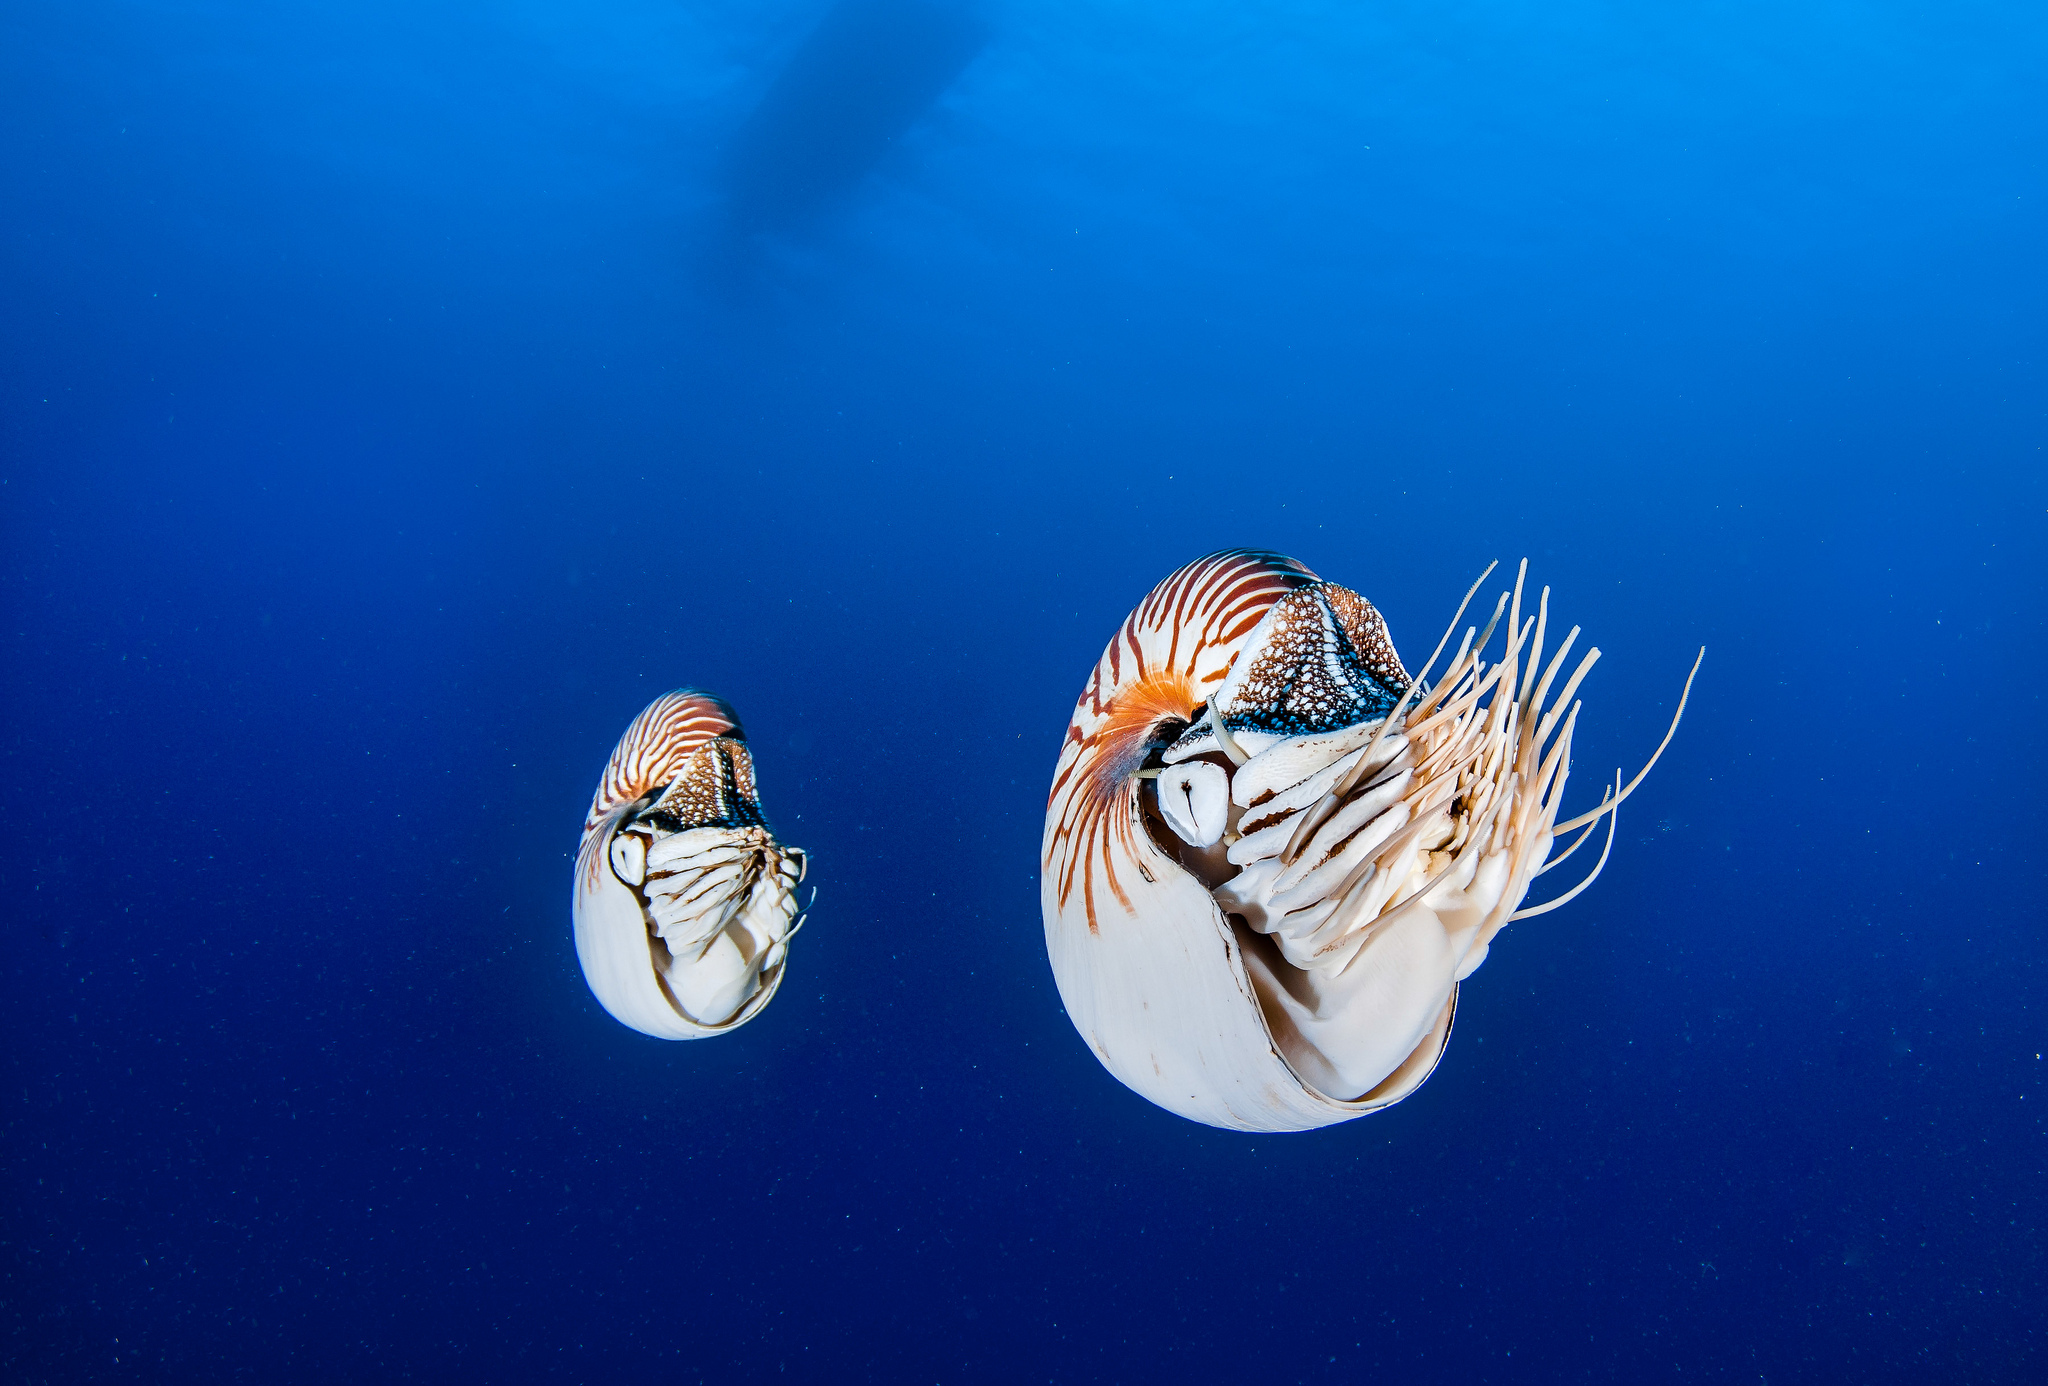 Two nautiluses in the open ocean off the coast of Palau.